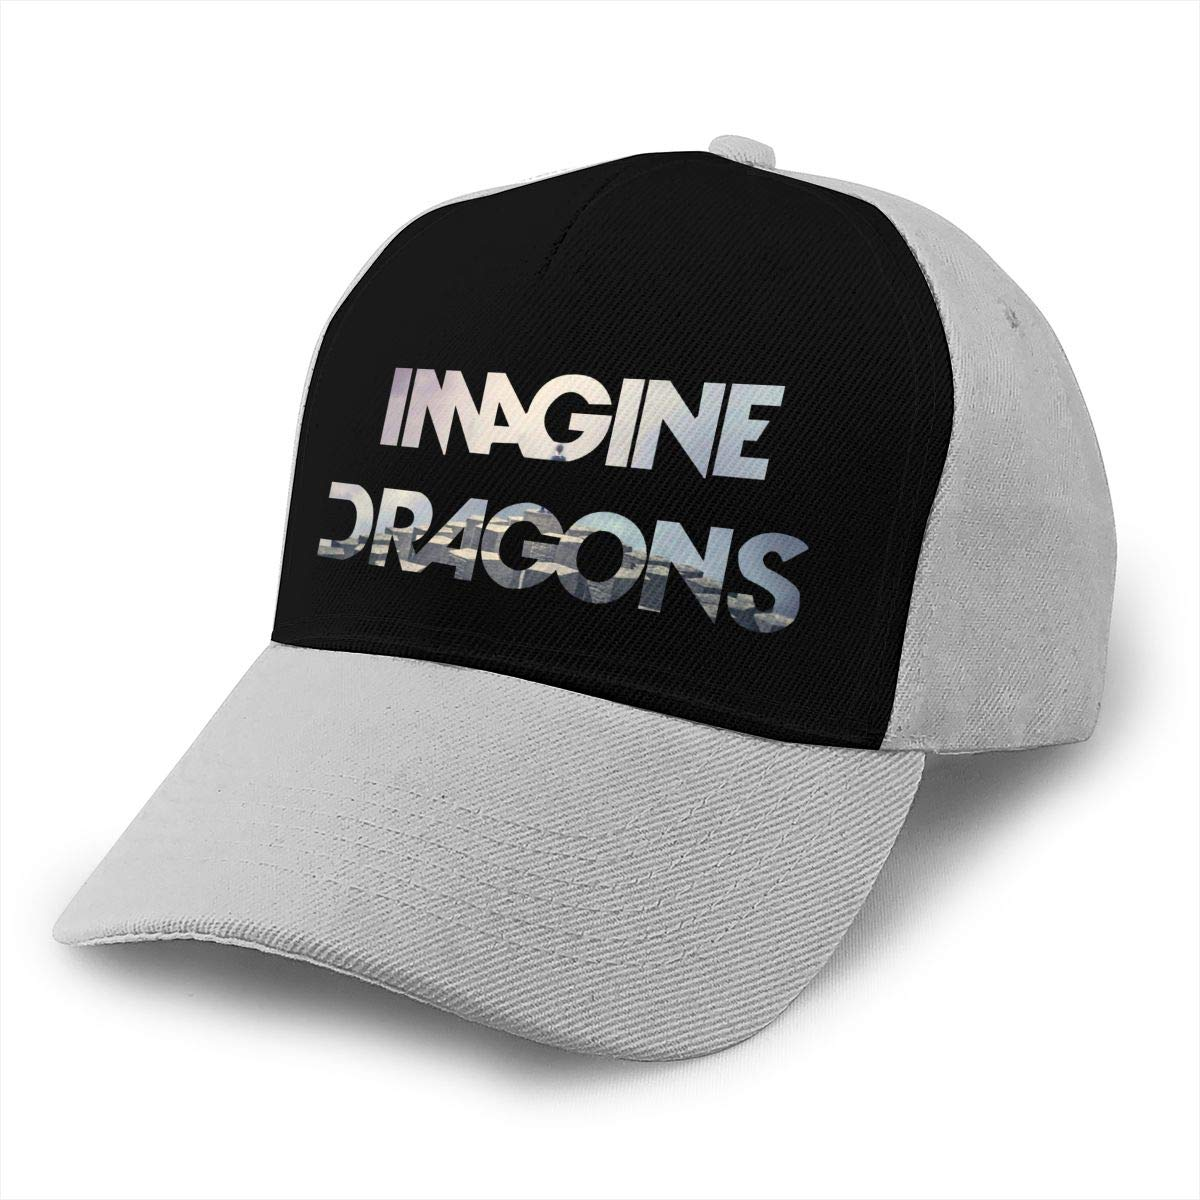 Adjustable Women Men Imagine The Dragons Print Baseball Cap Flat Brim Cap Hats Hip Hop Snapback Sun Hat Boys Girls Gray by Apolonia